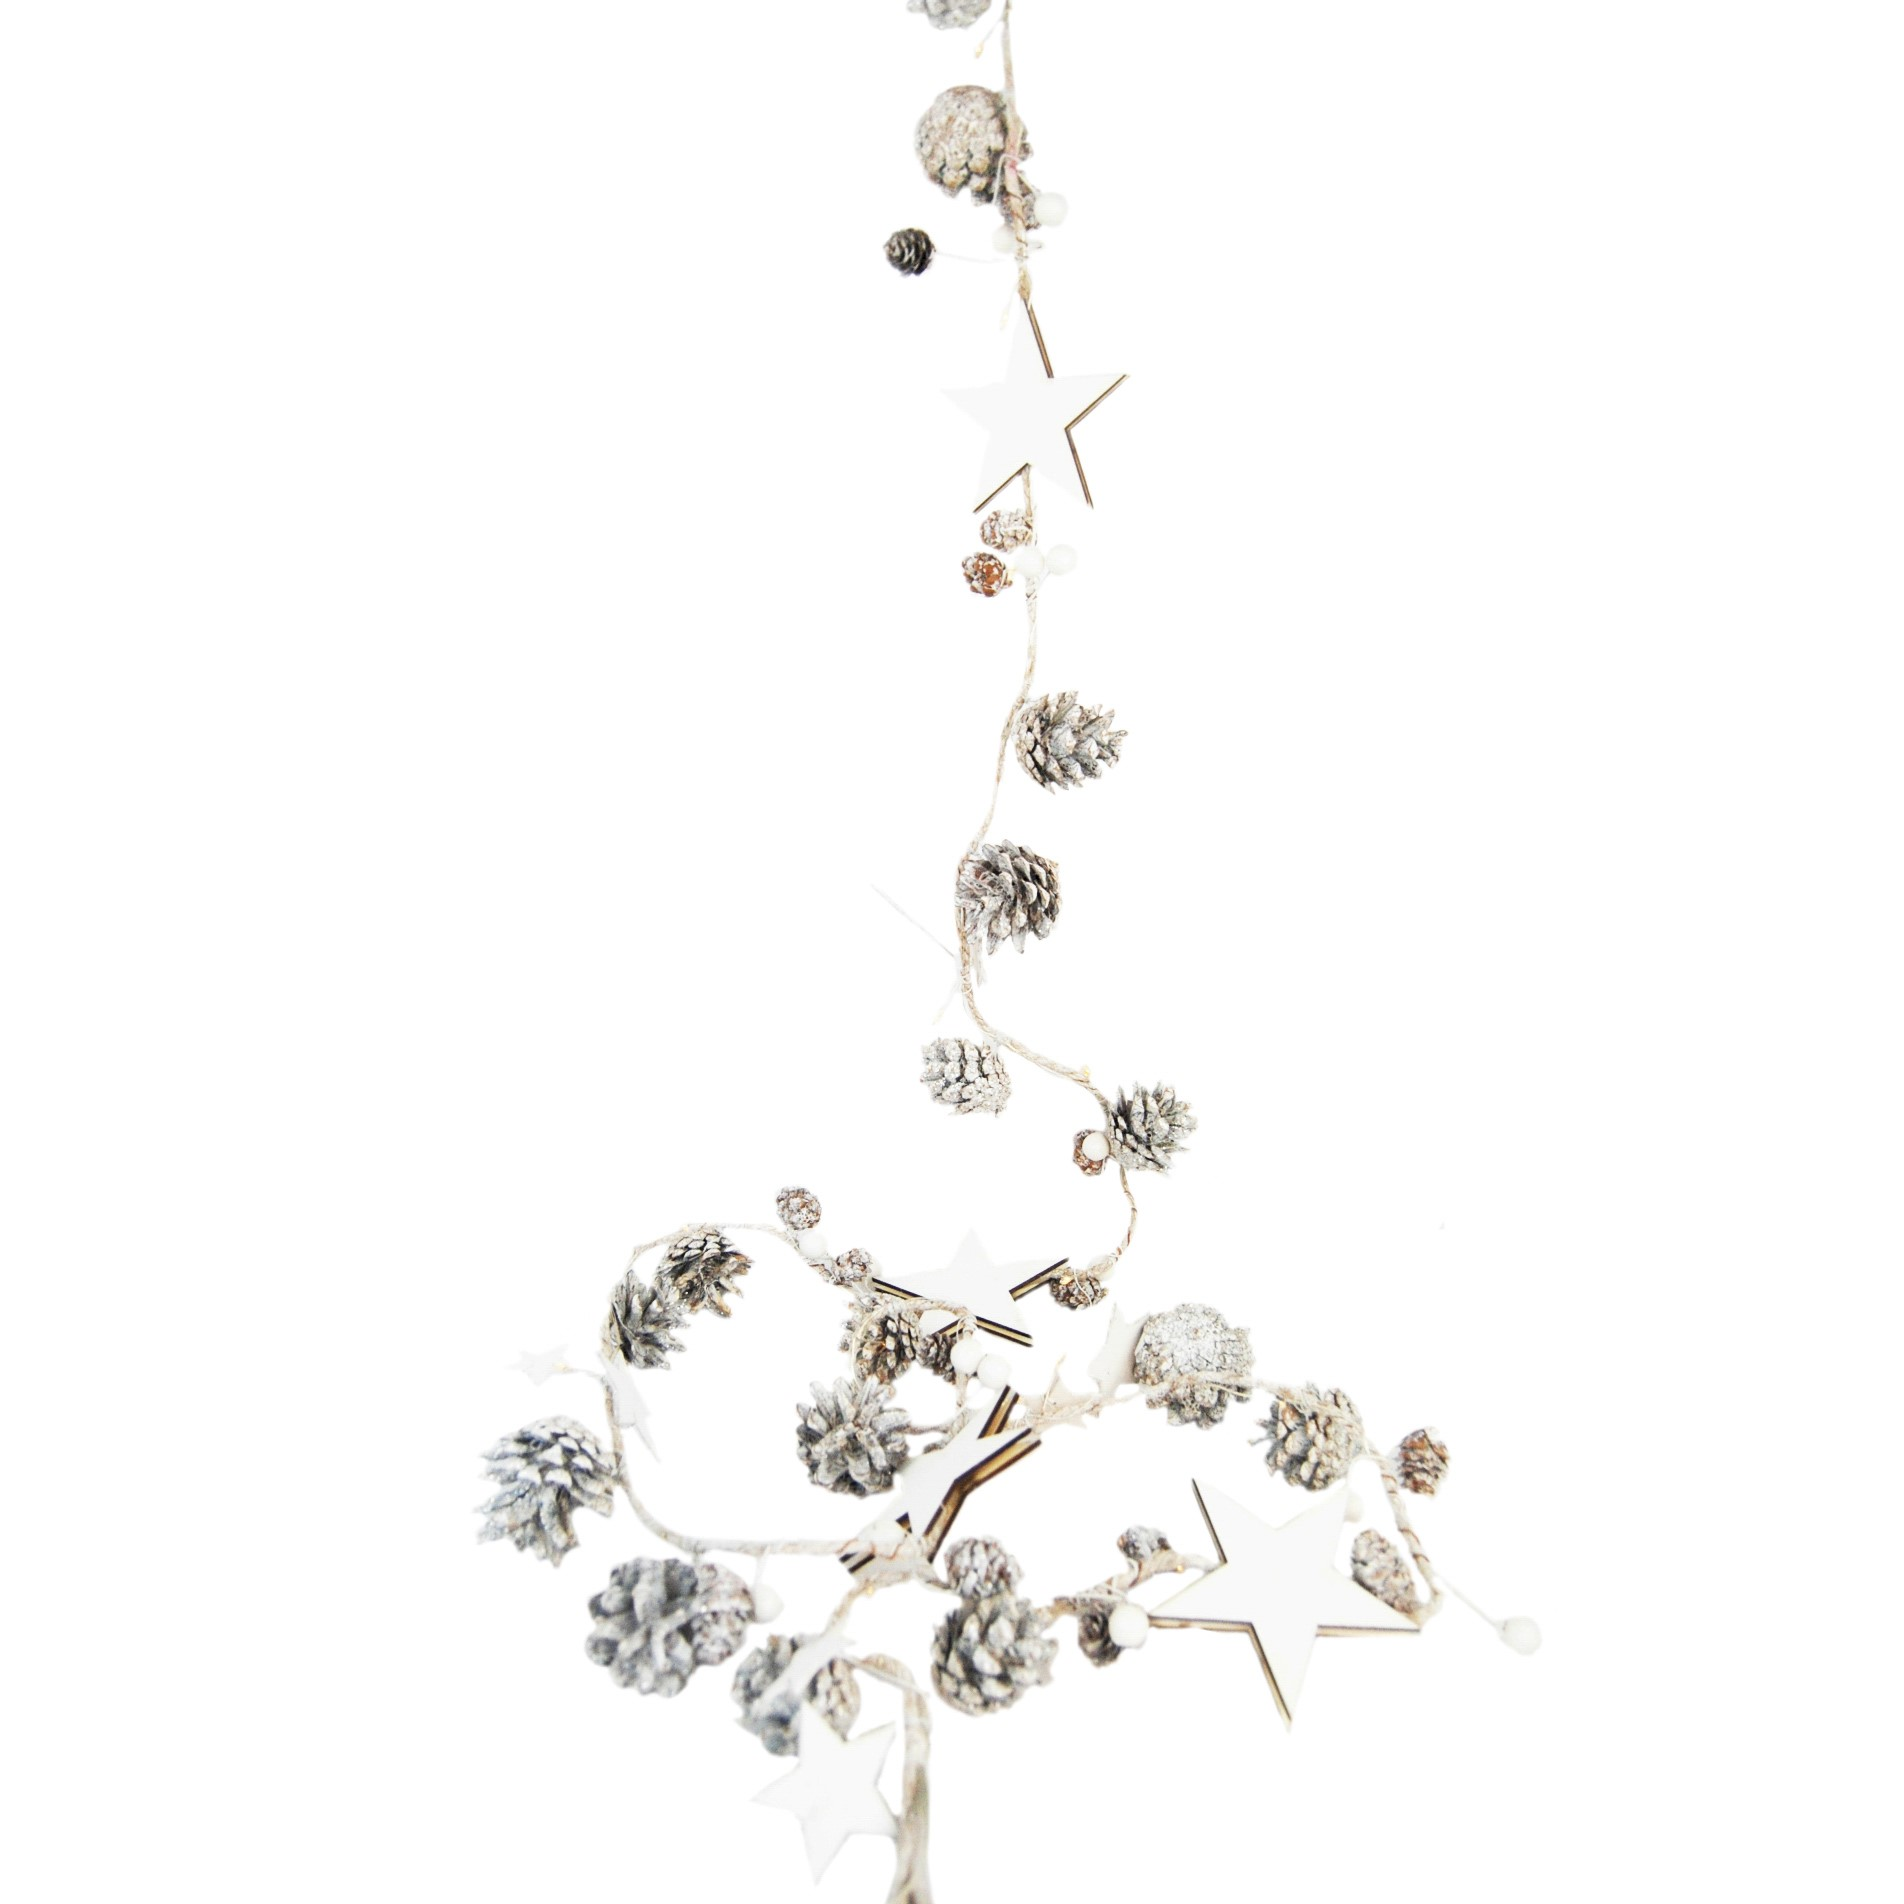 GARLAND 220cm WHITE WOOD STAR/PINECONE/BERRY LED